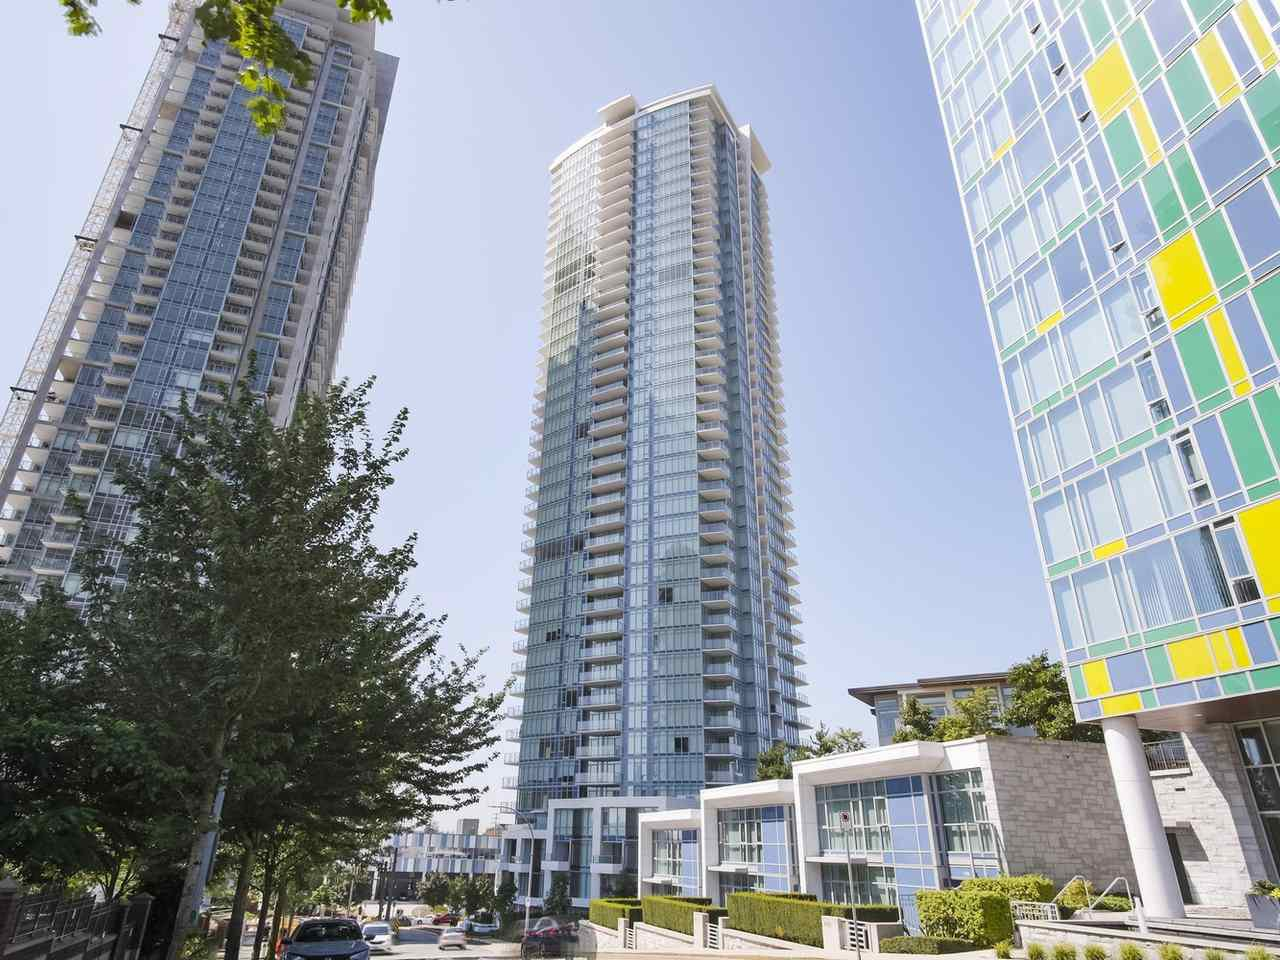 """Main Photo: 3308 1788 GILMORE Avenue in Burnaby: Brentwood Park Condo for sale in """"Escala"""" (Burnaby North)  : MLS®# R2399305"""